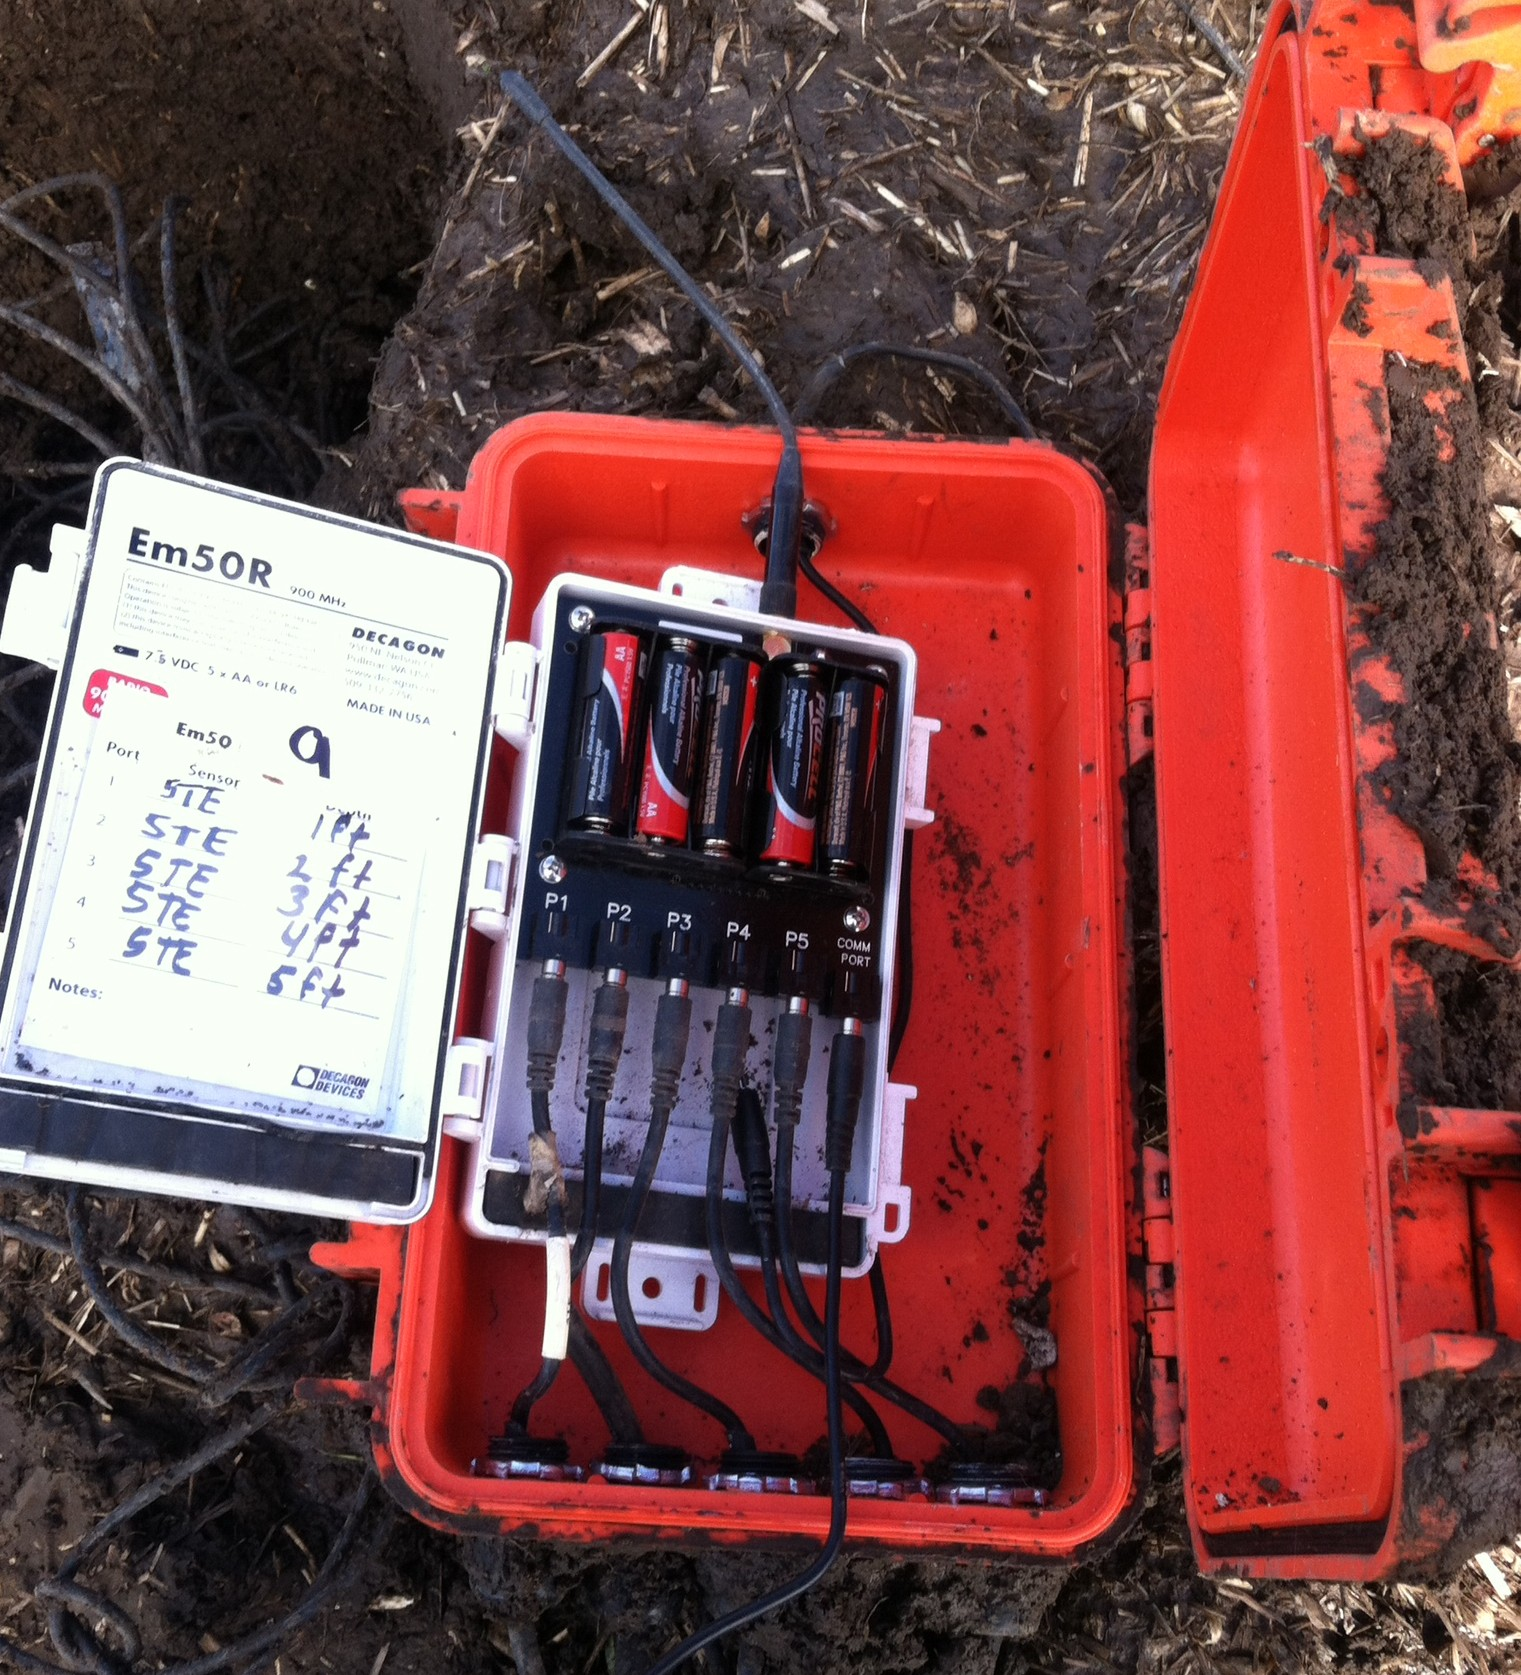 Data Logger in an orange bury-able box sitting on next to installation site